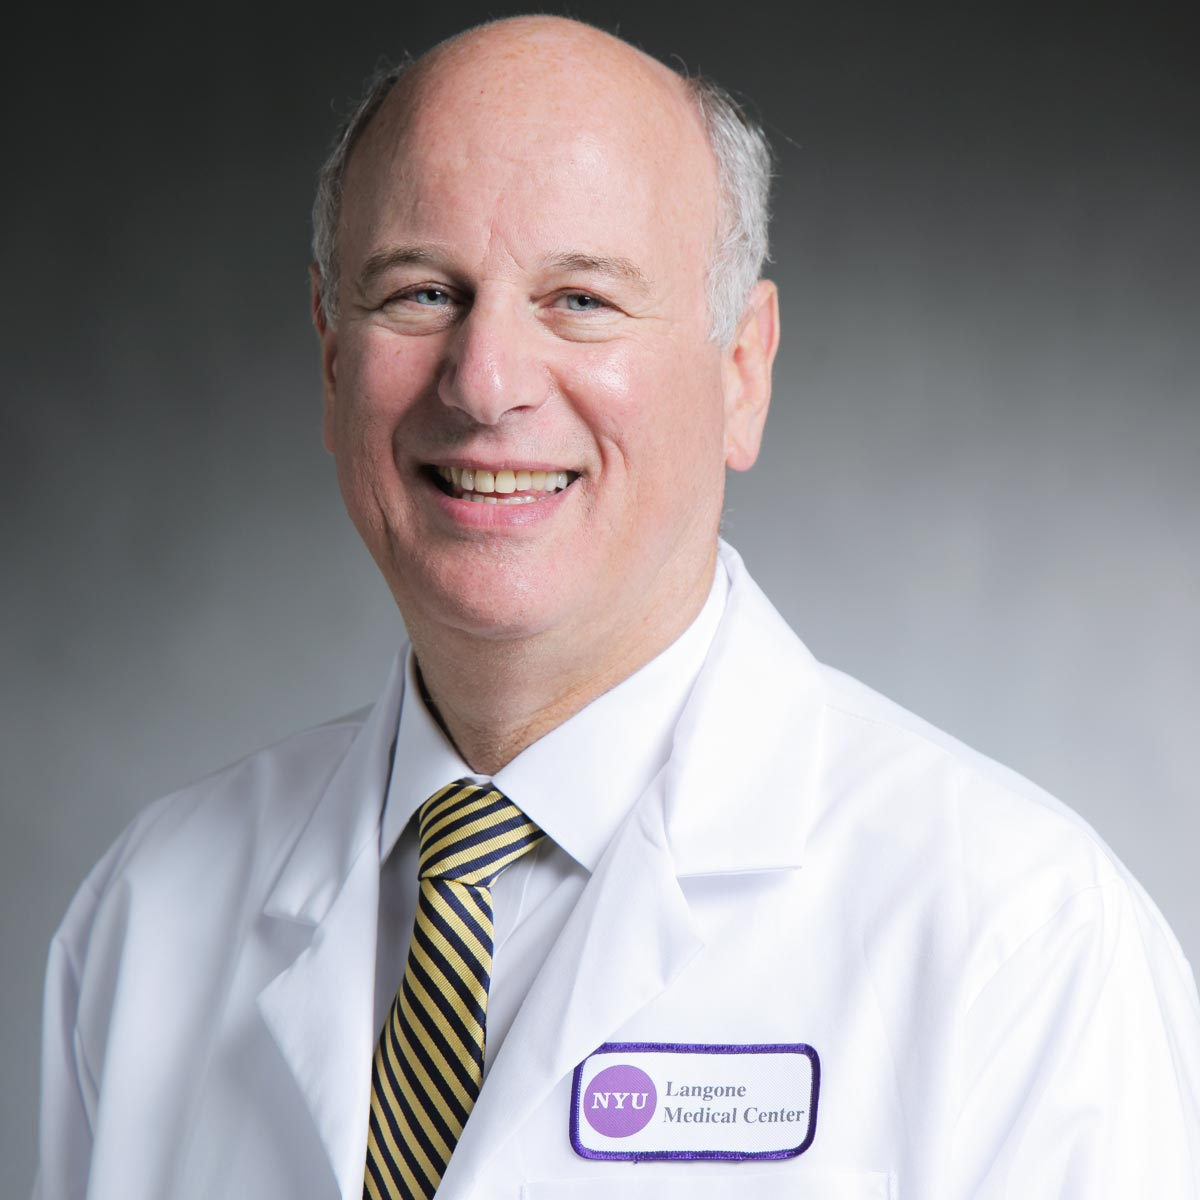 Terry Seltzer at [NYU Langone Medical Center]